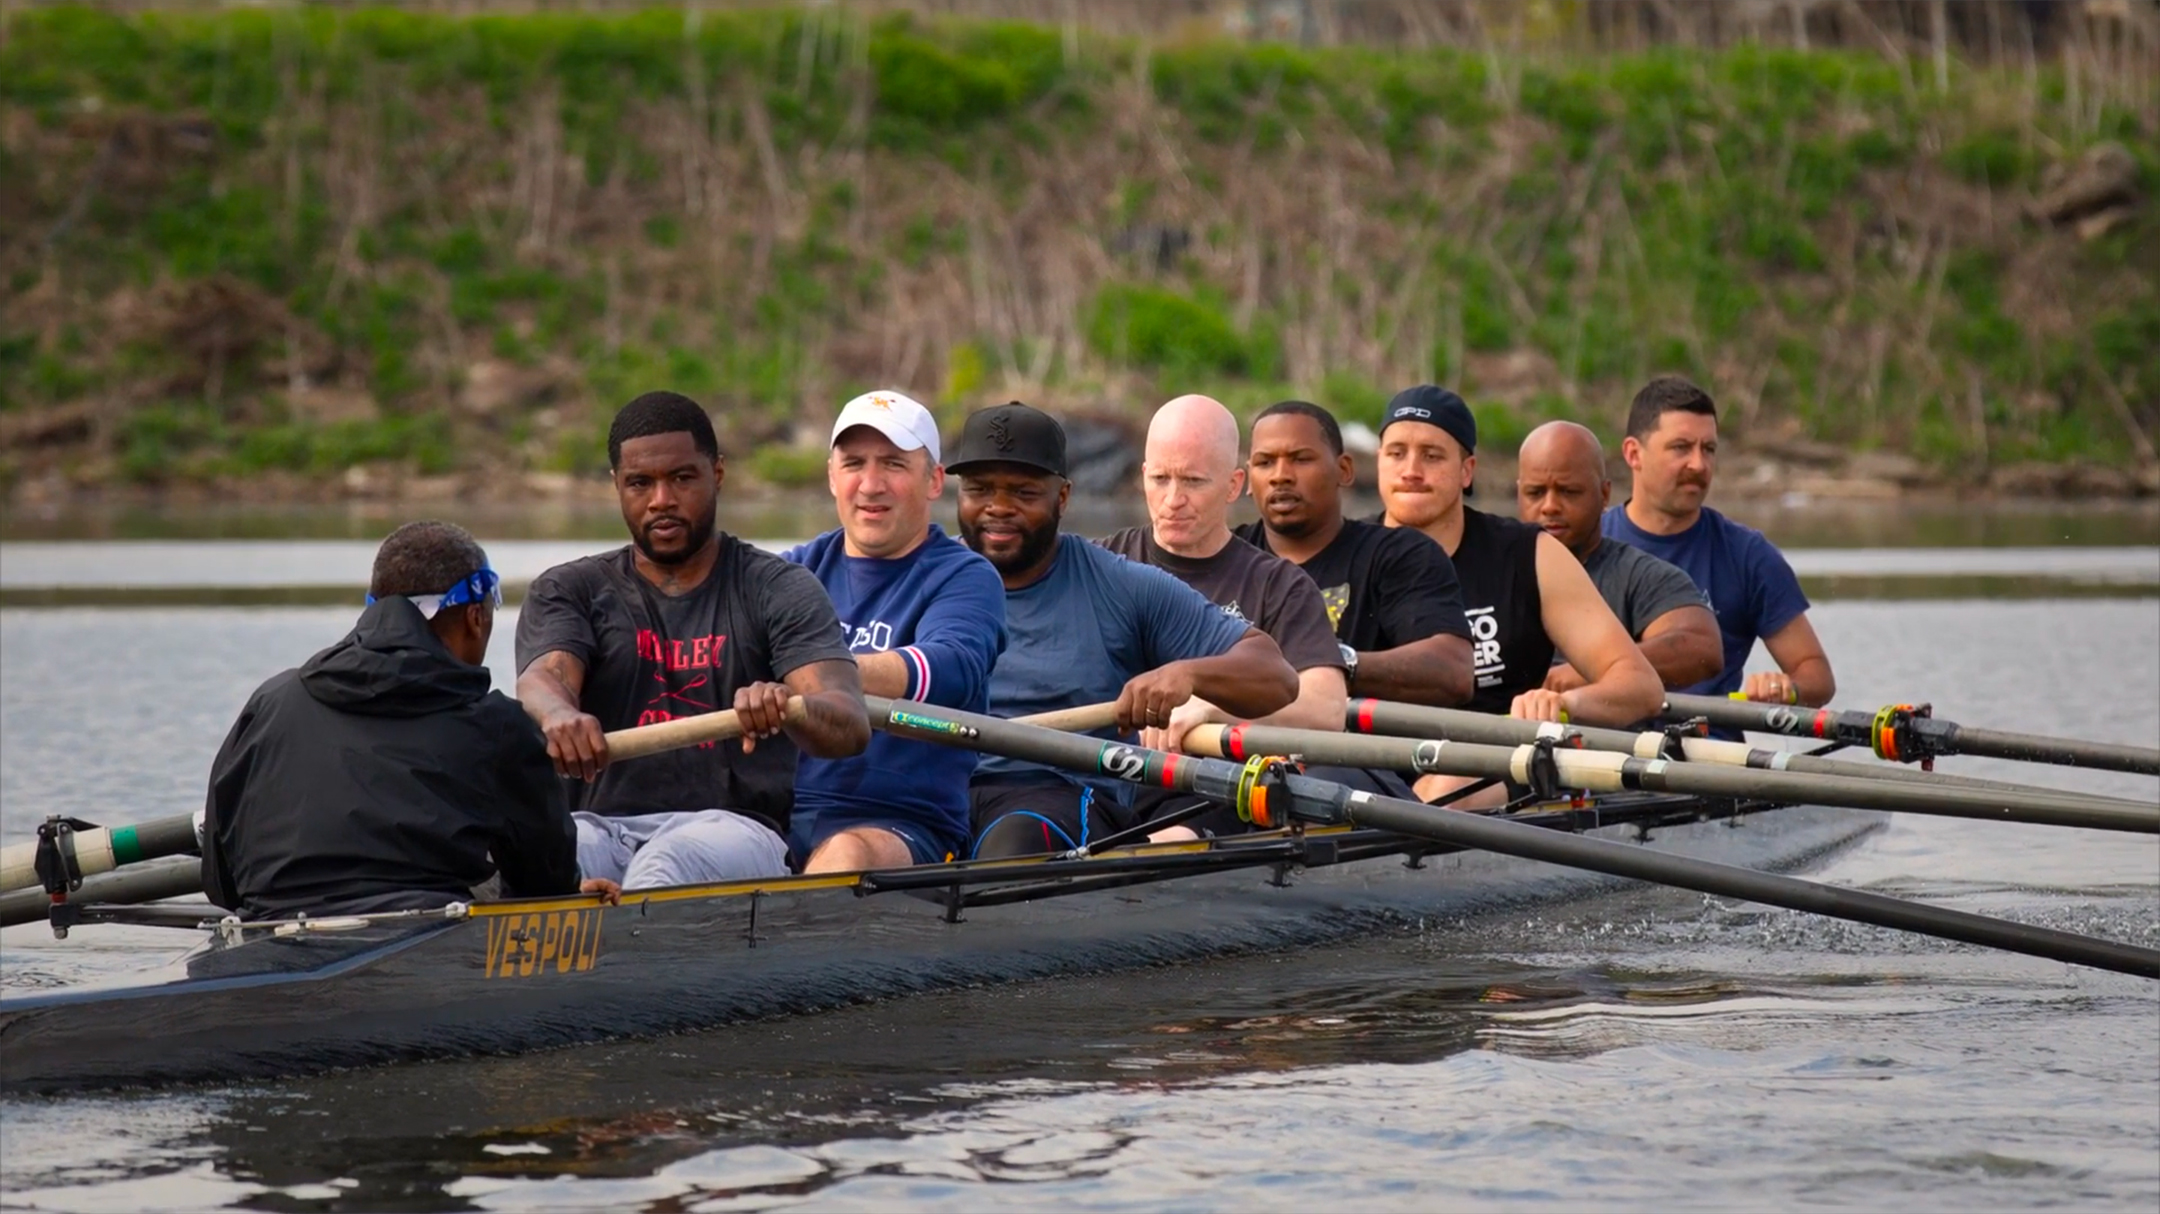 nine people in a boat, five black and four white, rowing on a river